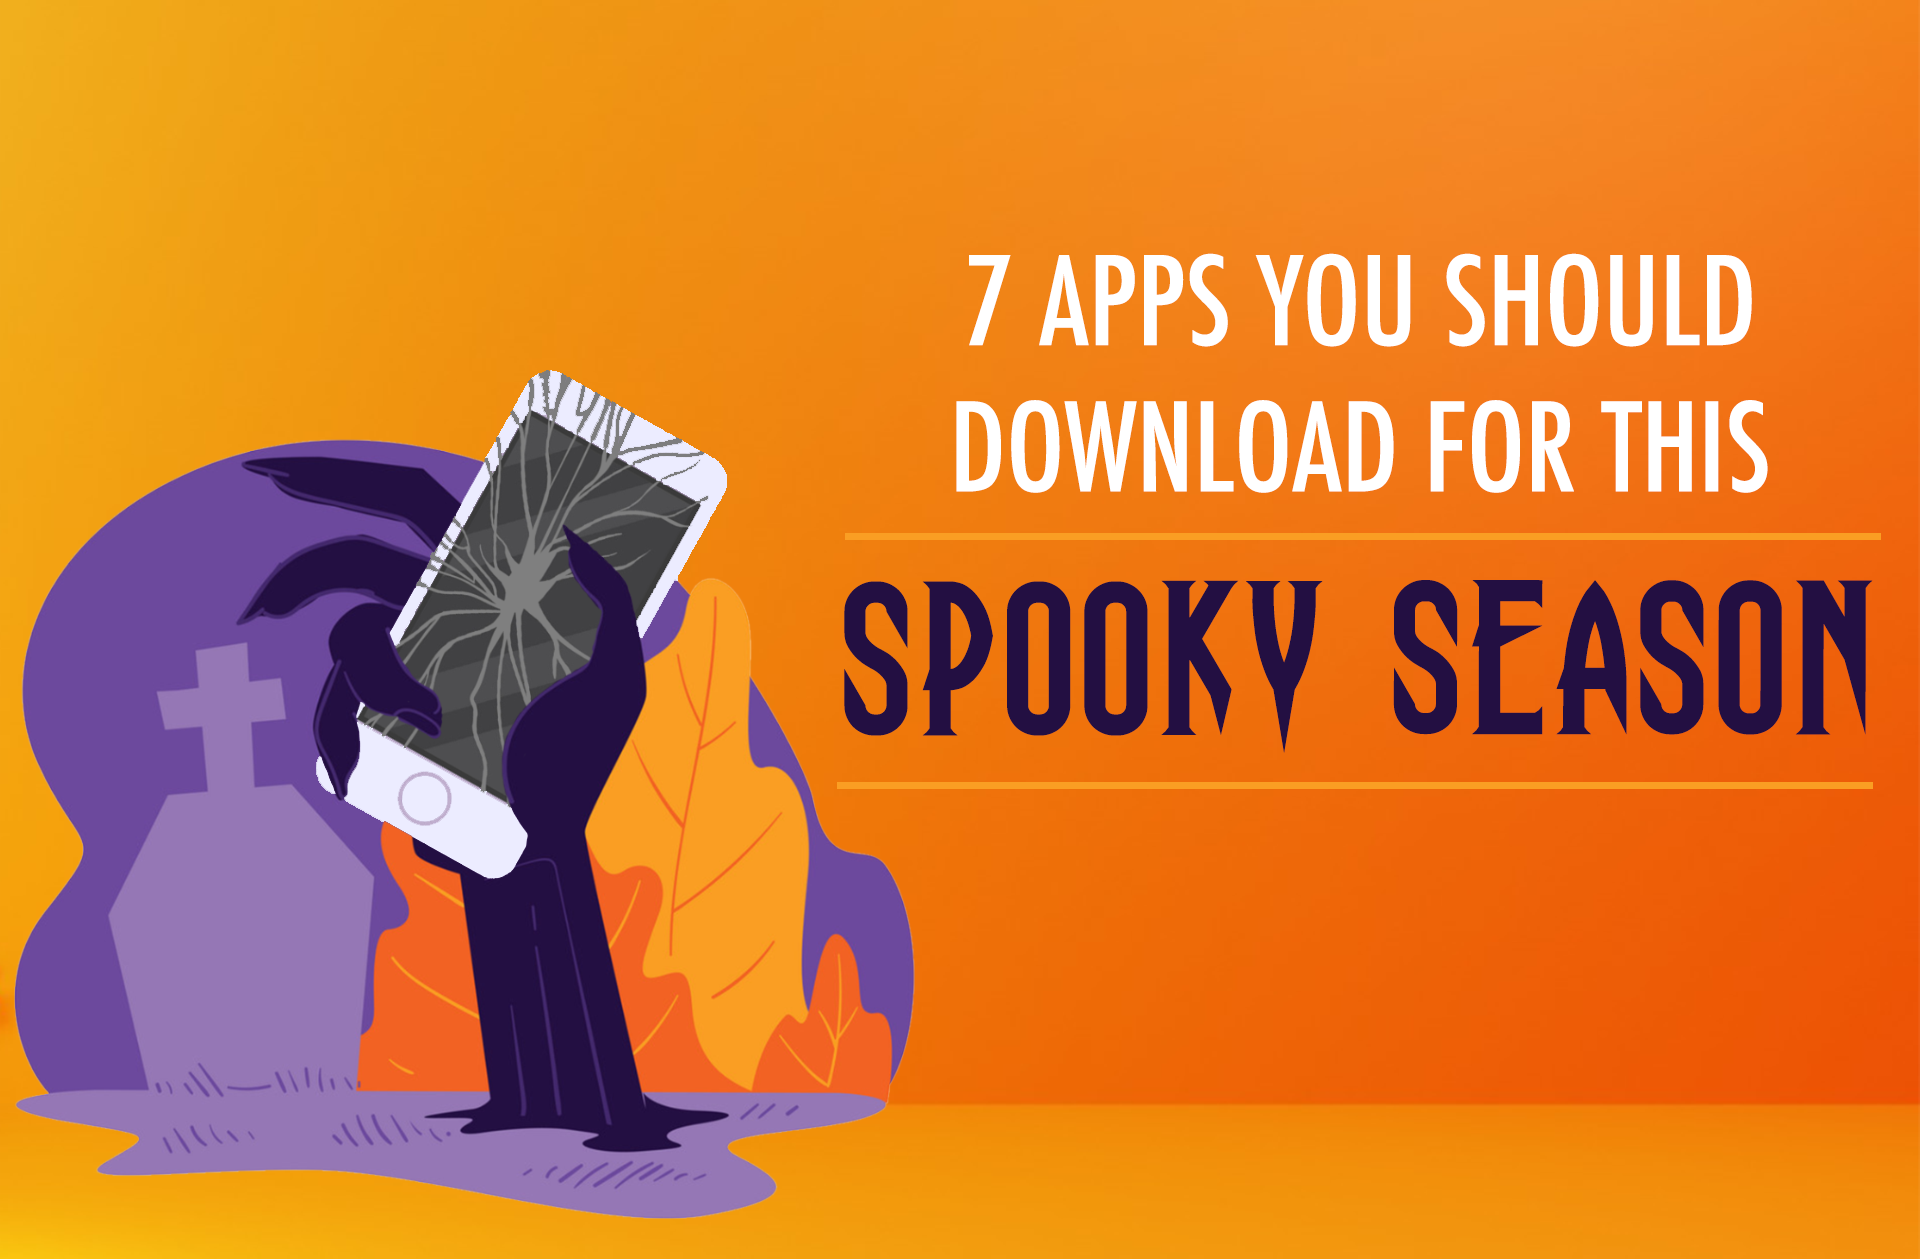 7 Apps You Should Download For This Spooky Season